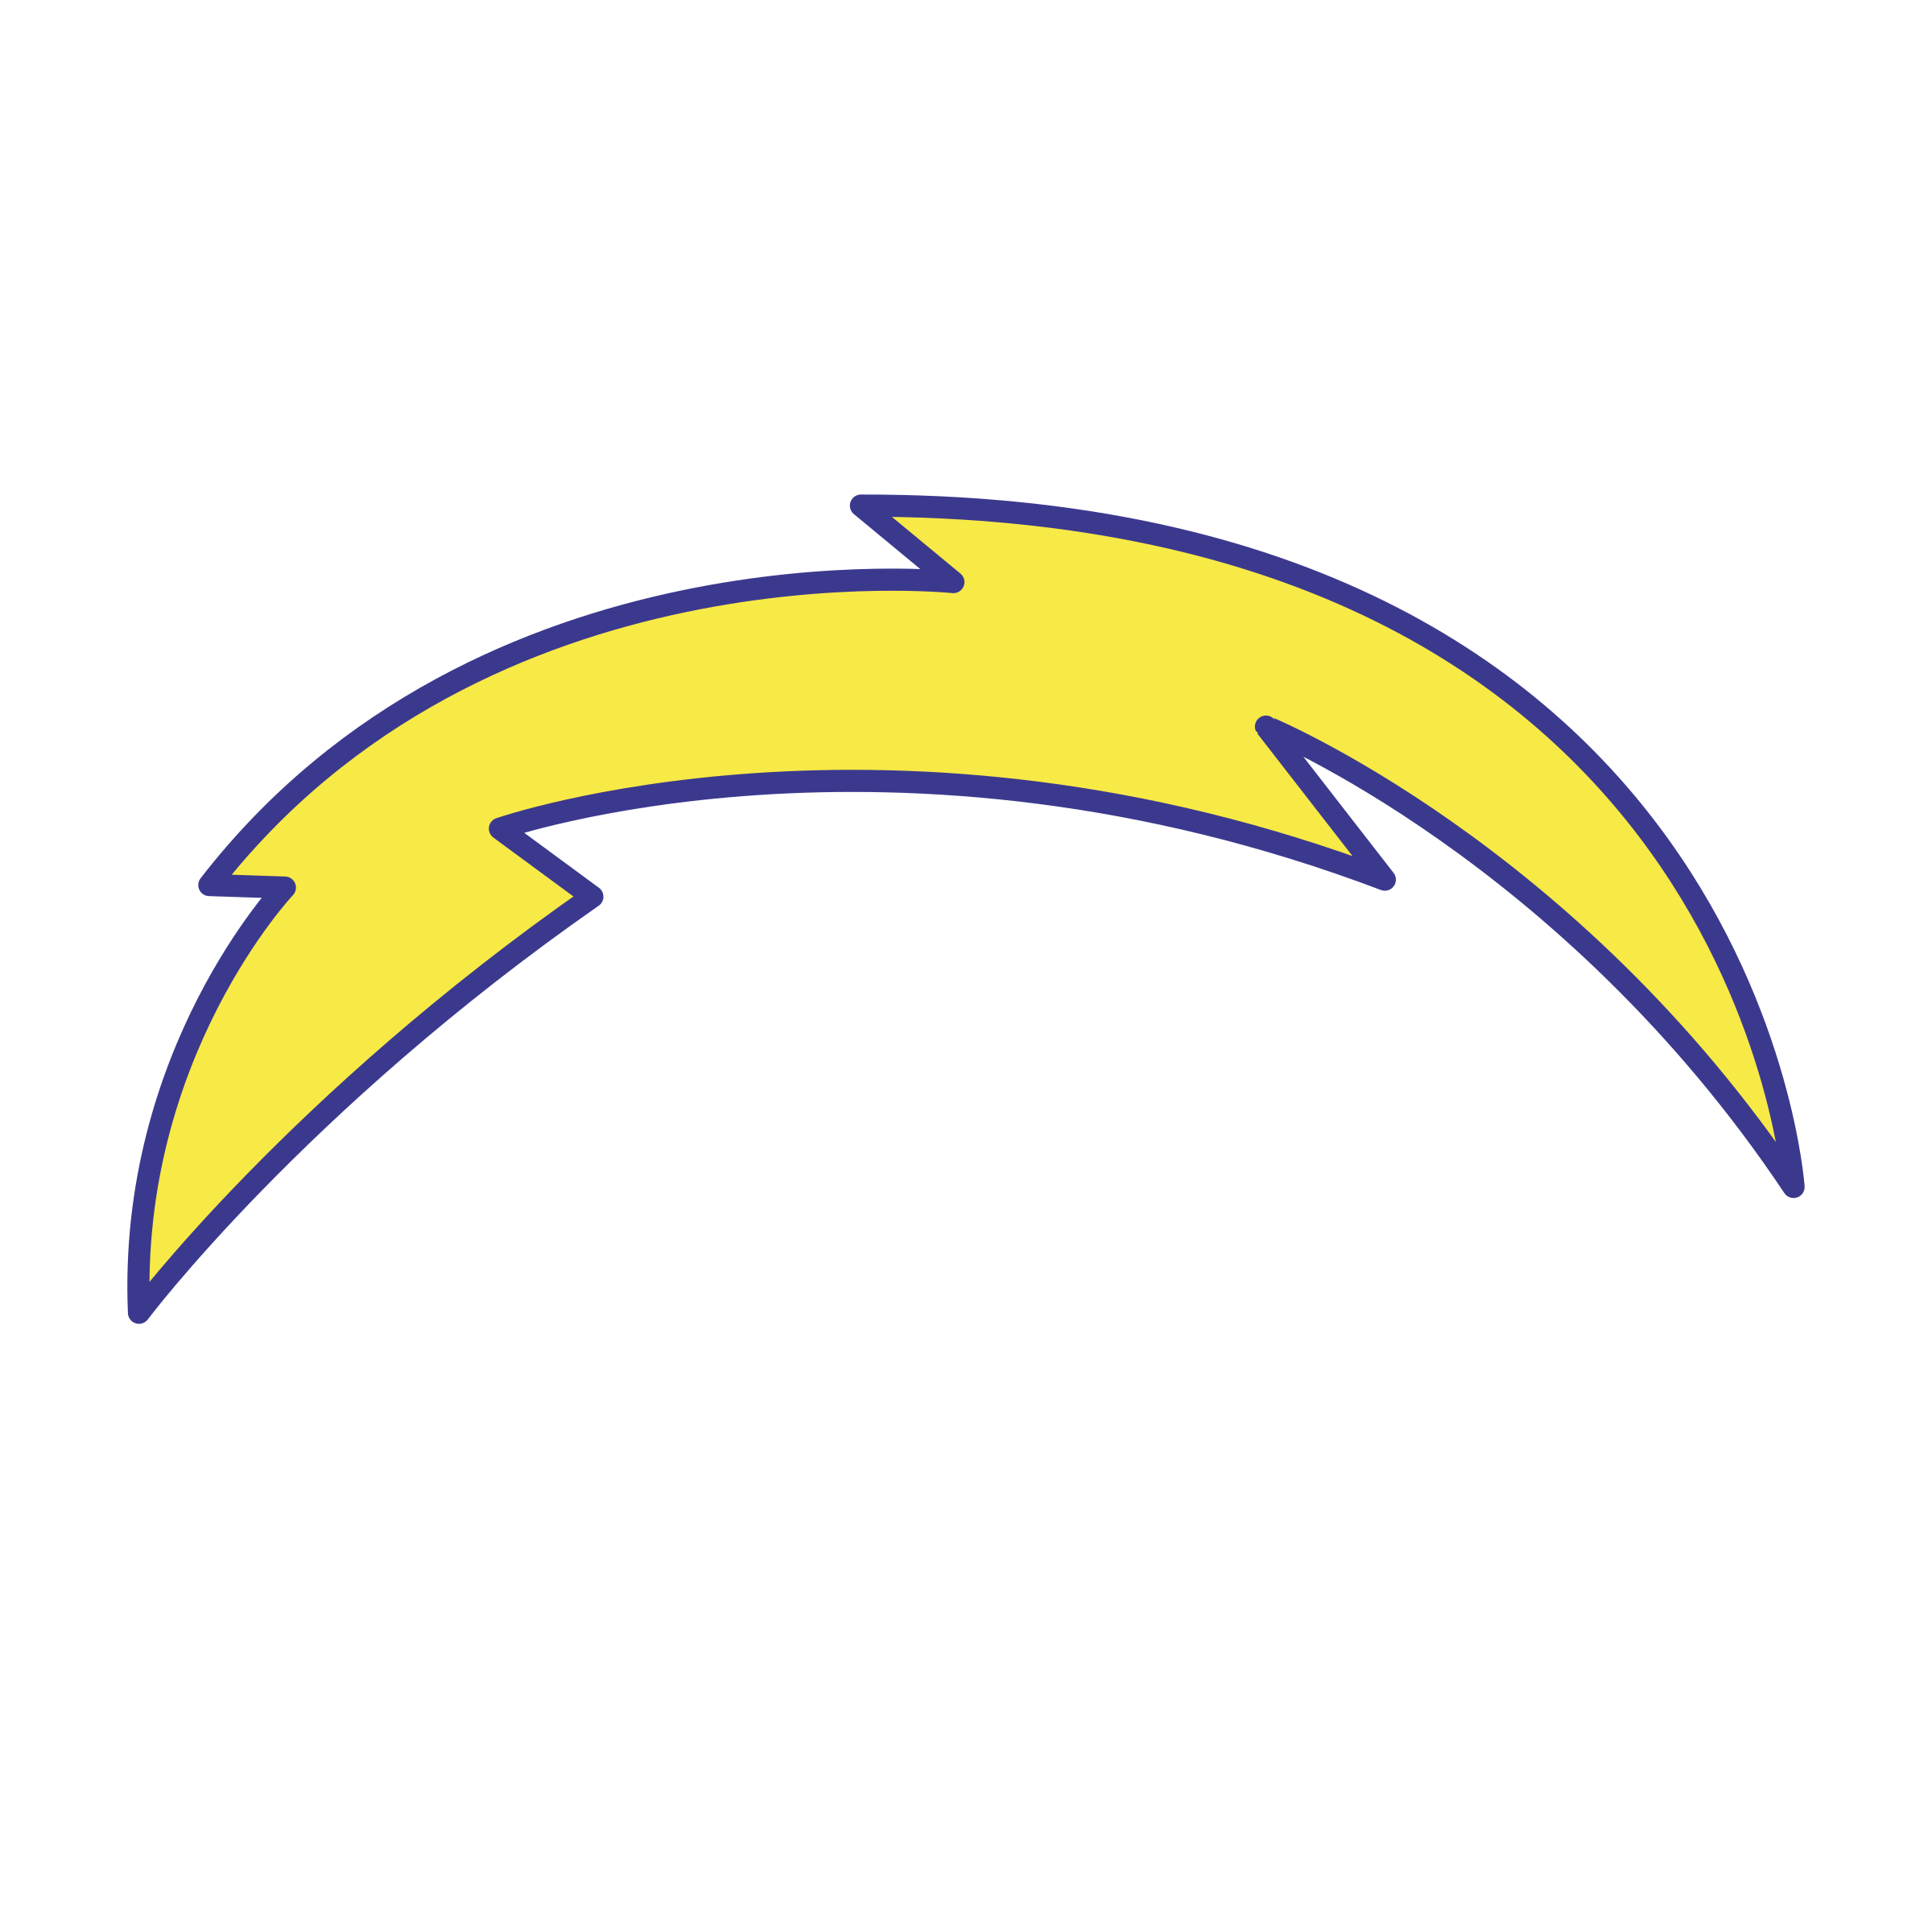 San Diego Chargers Emblem: San Diego Chargers Logo PNG Transparent & SVG Vector